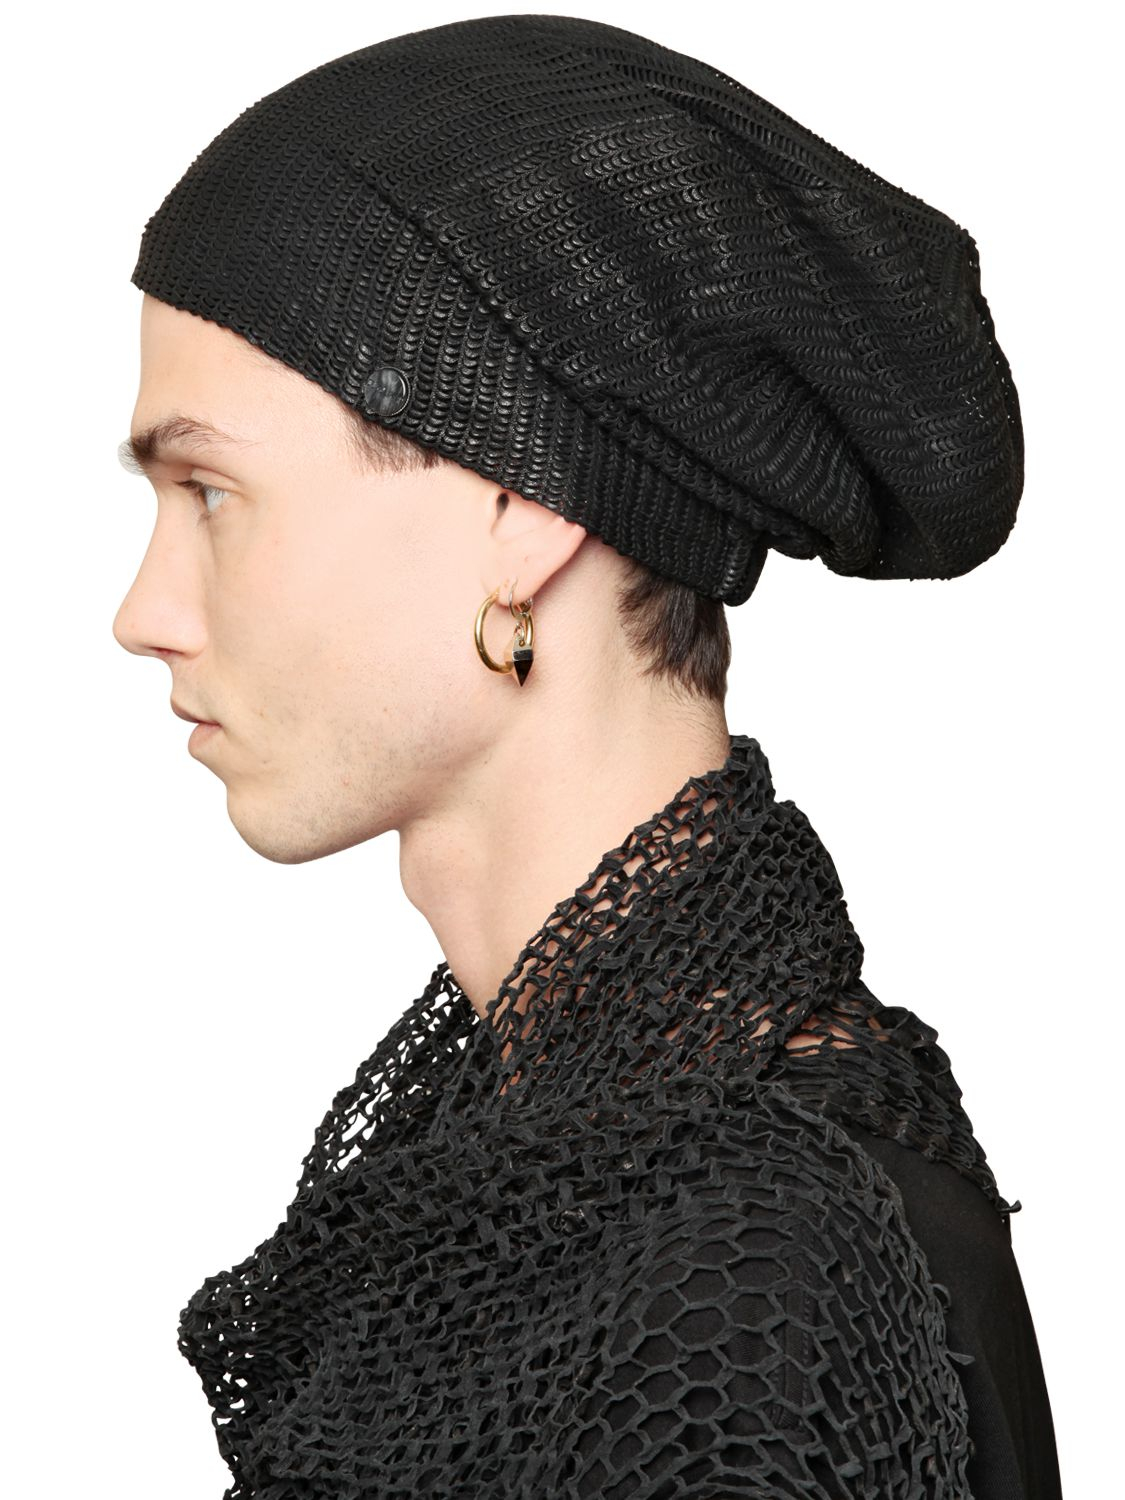 Lyst - Cutuli Cult Snakeskin Effect Leather Beanie in Black for Men 81691a1f9f8